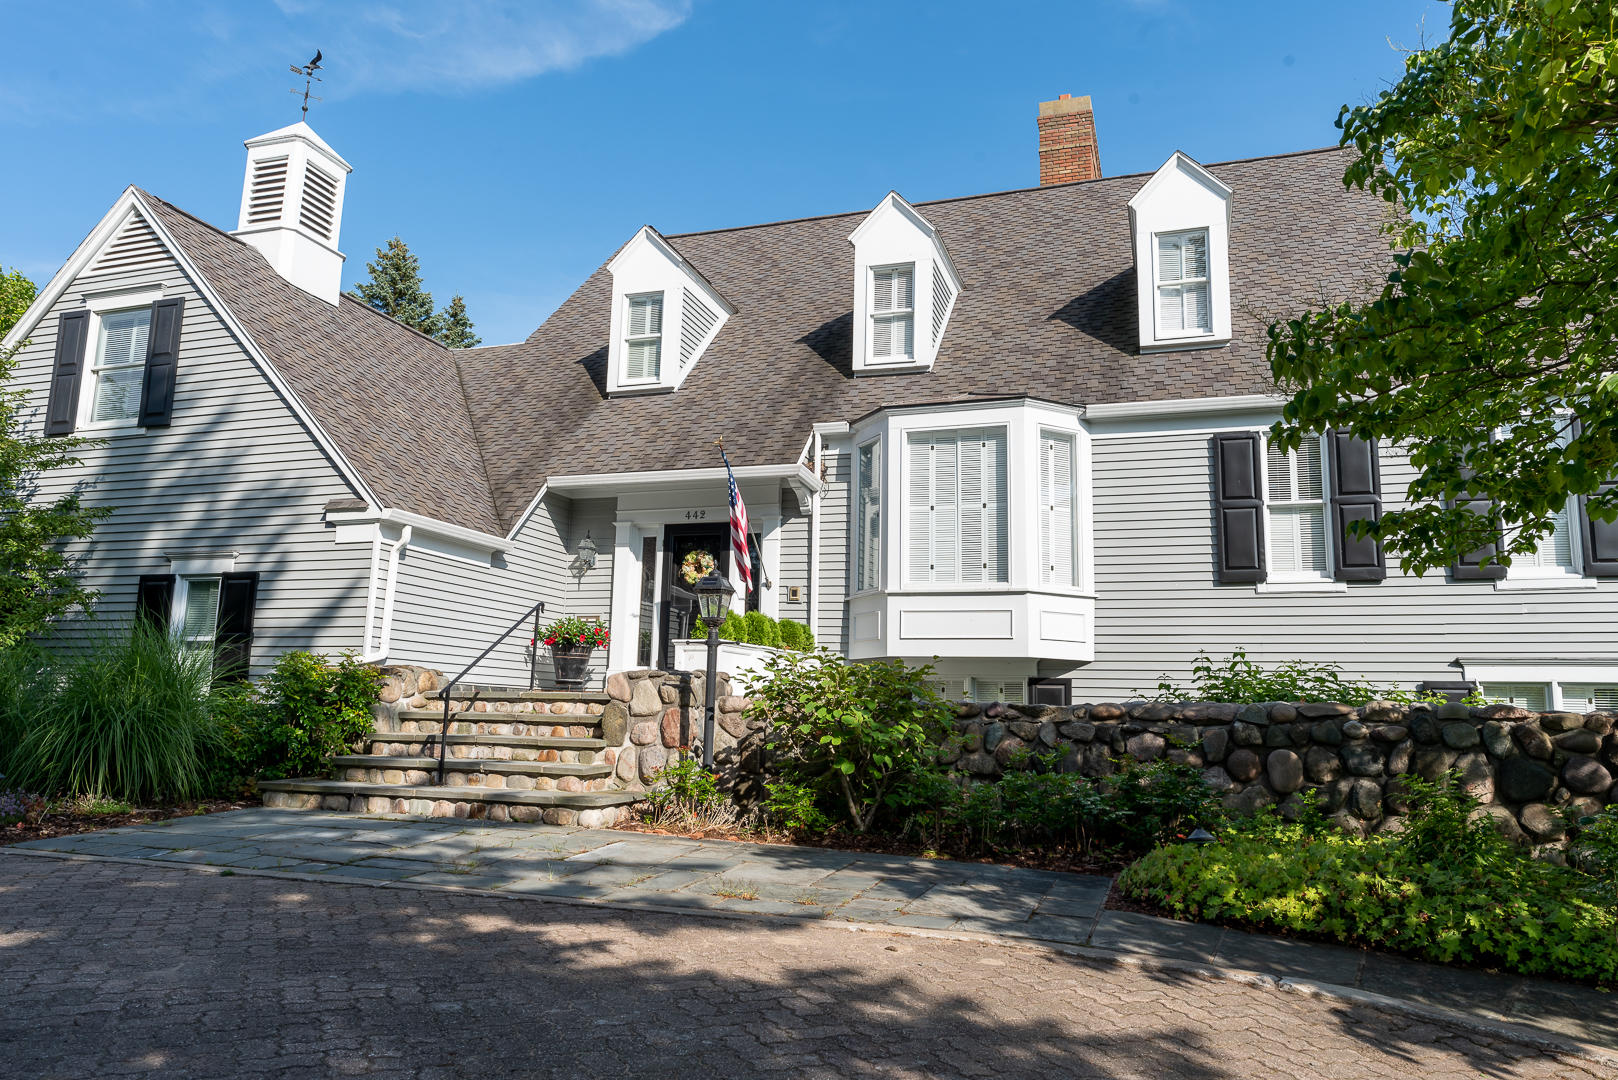 442 S State Avenue, one of homes for sale in Alpena